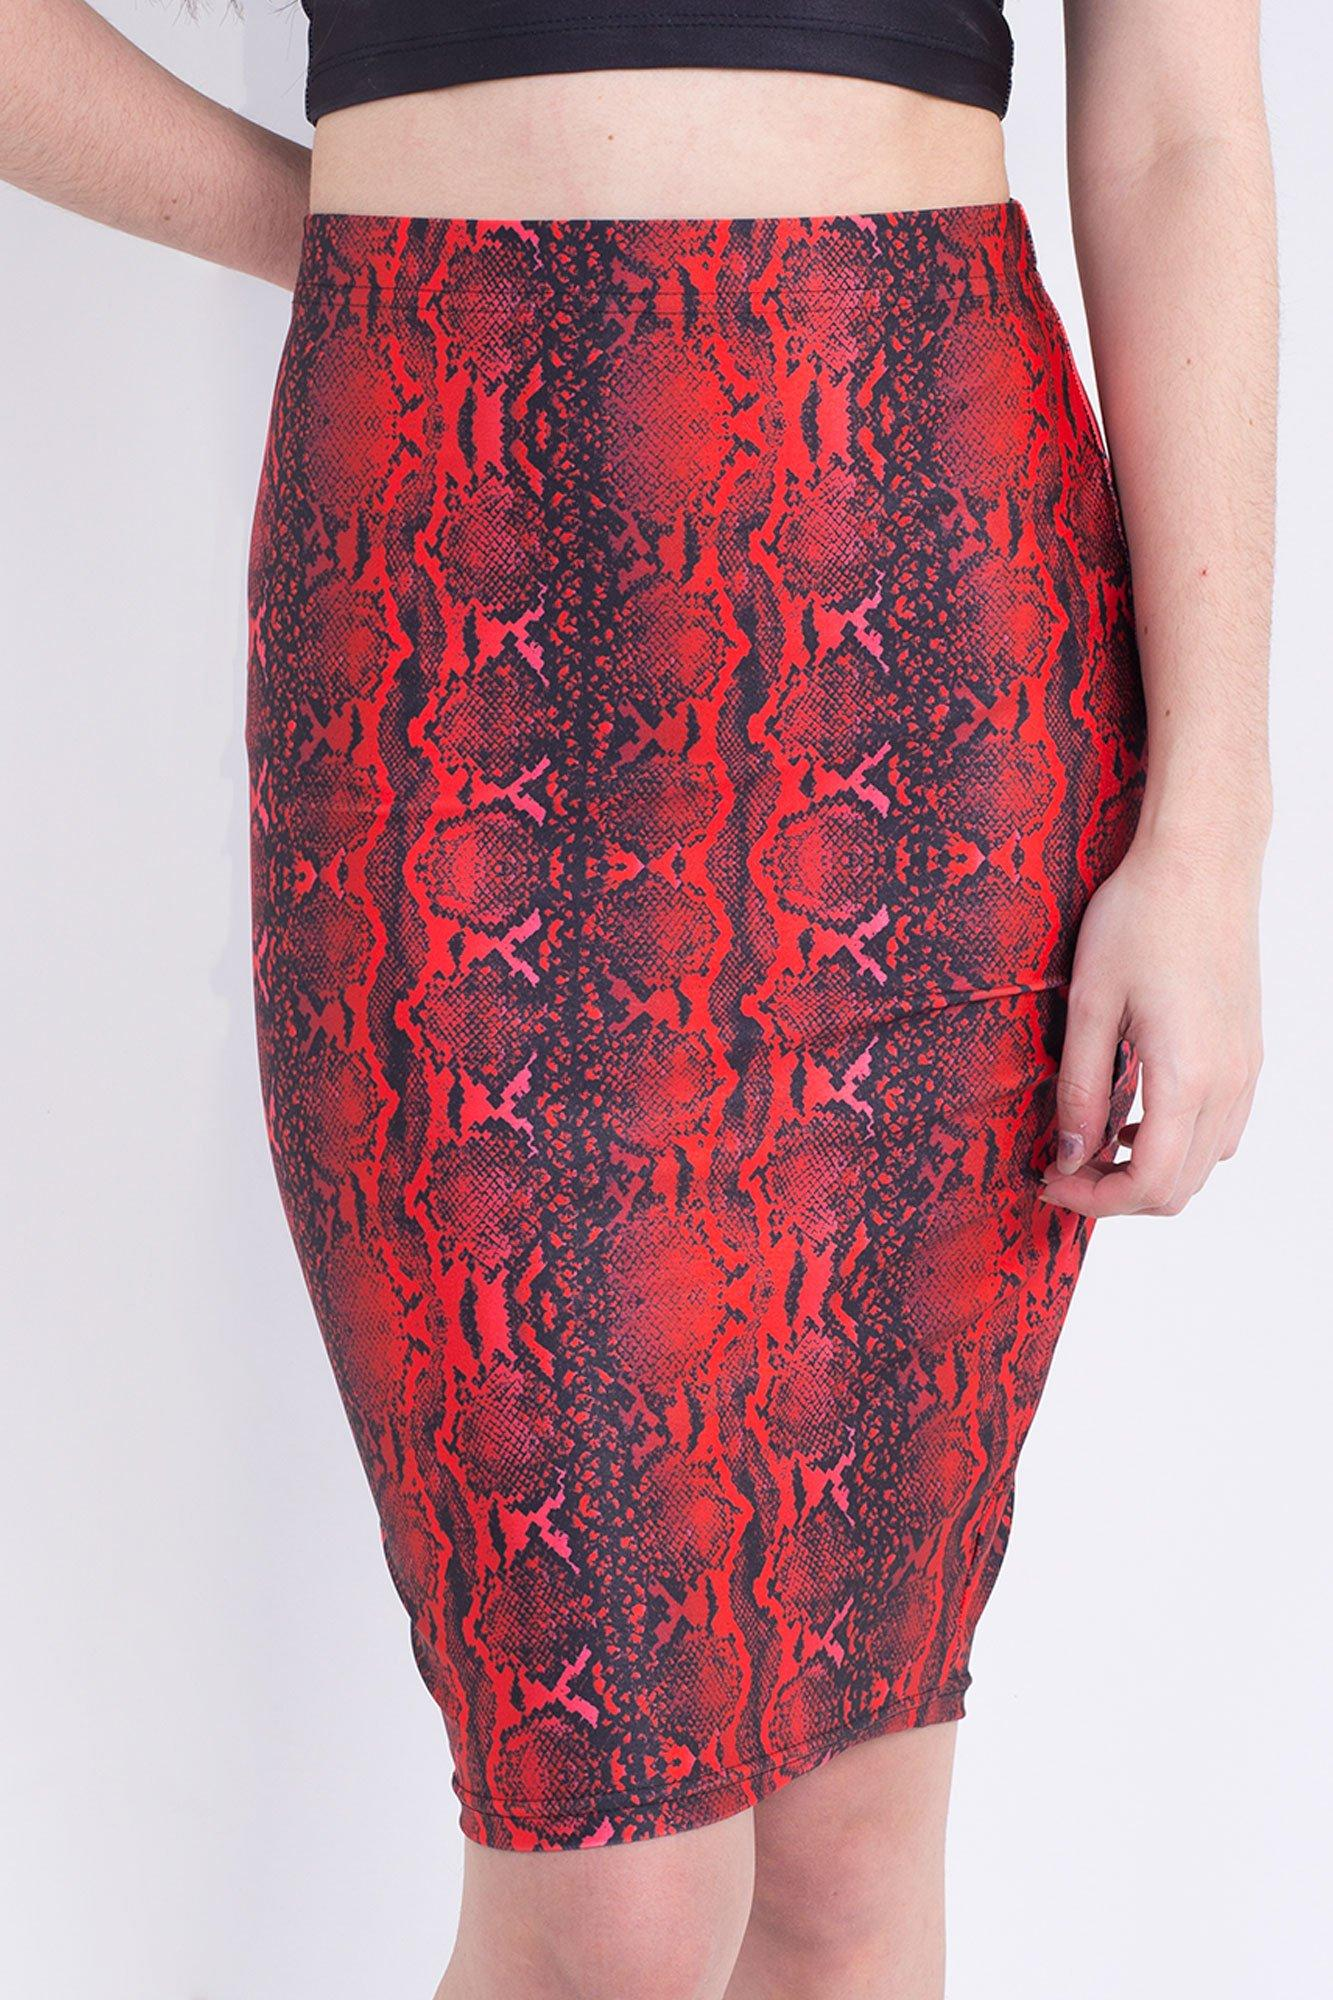 Dragon Serpent Scale Pencil Skirt